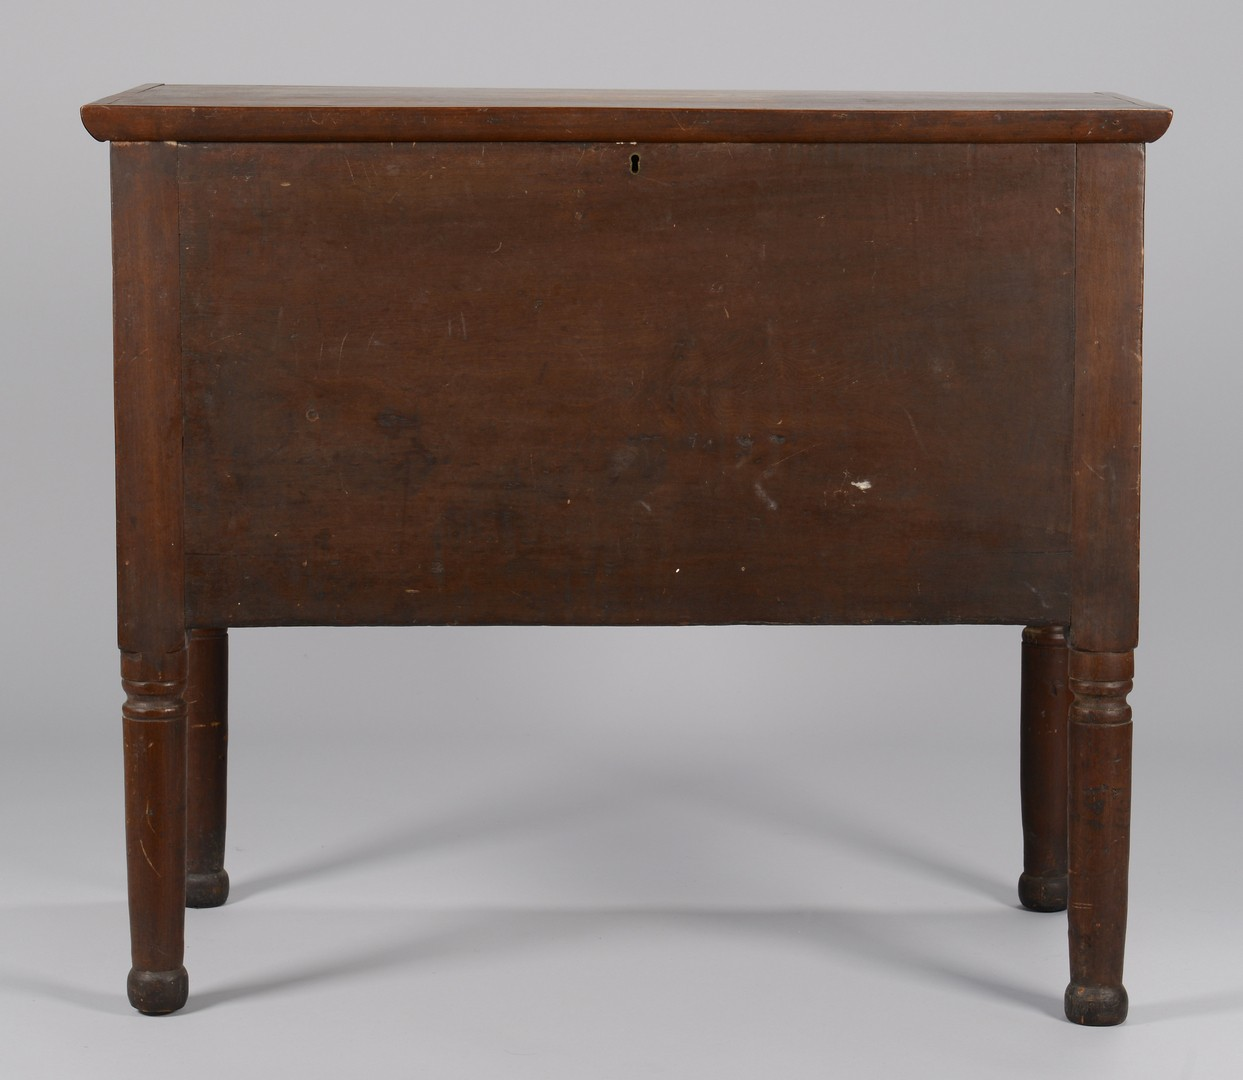 Lot 161: Southern Blanket Chest on Tall Turned Legs